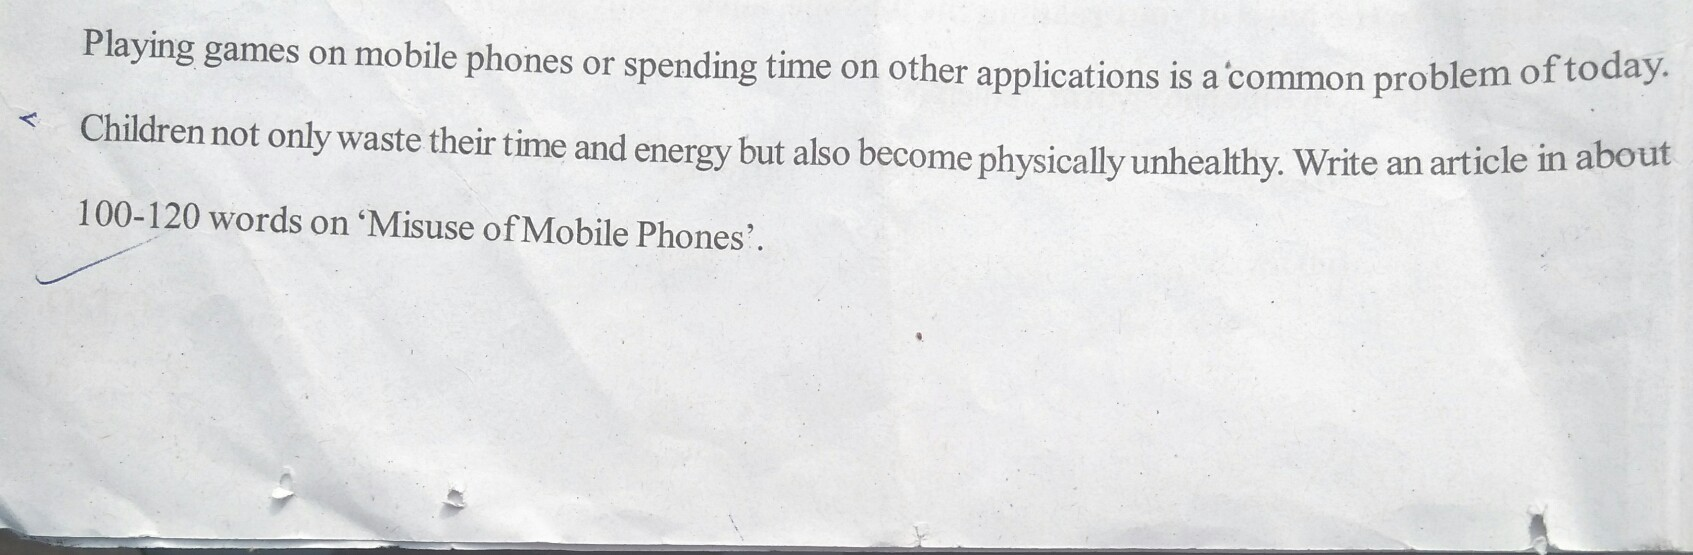 Write an article in about 100-120 words on 'Misuse of mobile phone's. -  Brainly.in